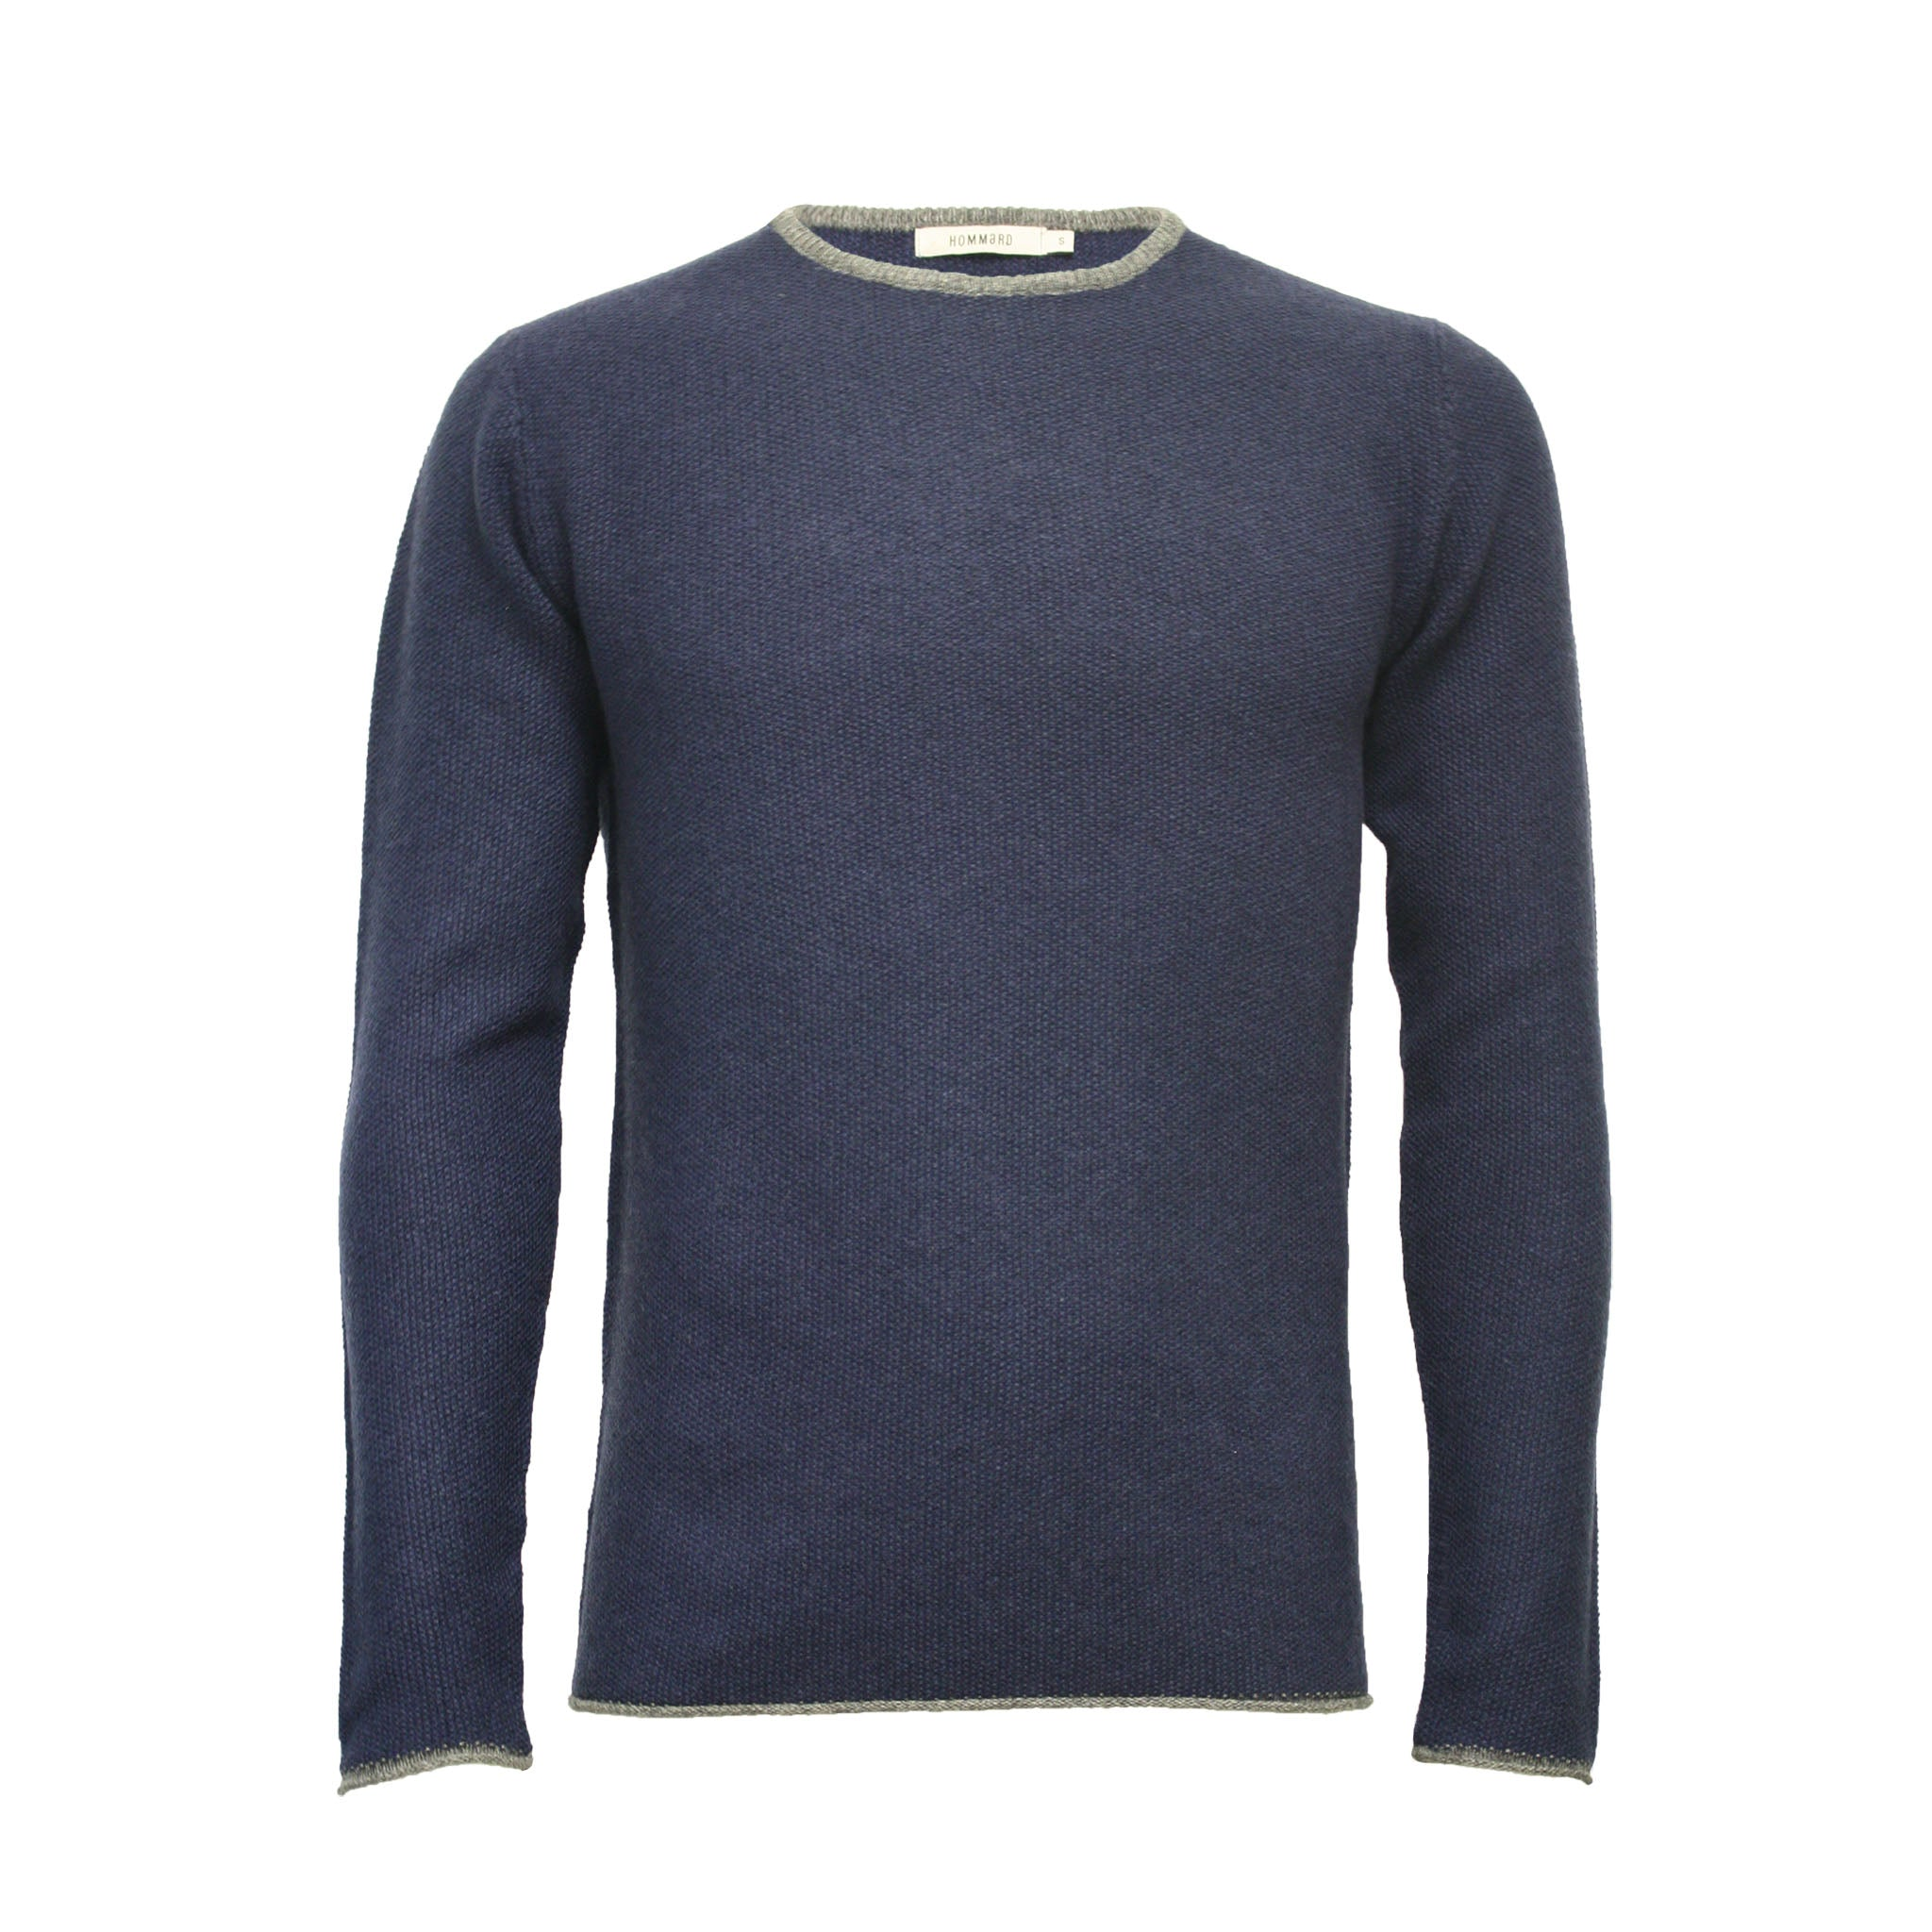 Men´s Cashmere Crew Neck Sweater Shuttle in Rice Stitch - Hommard